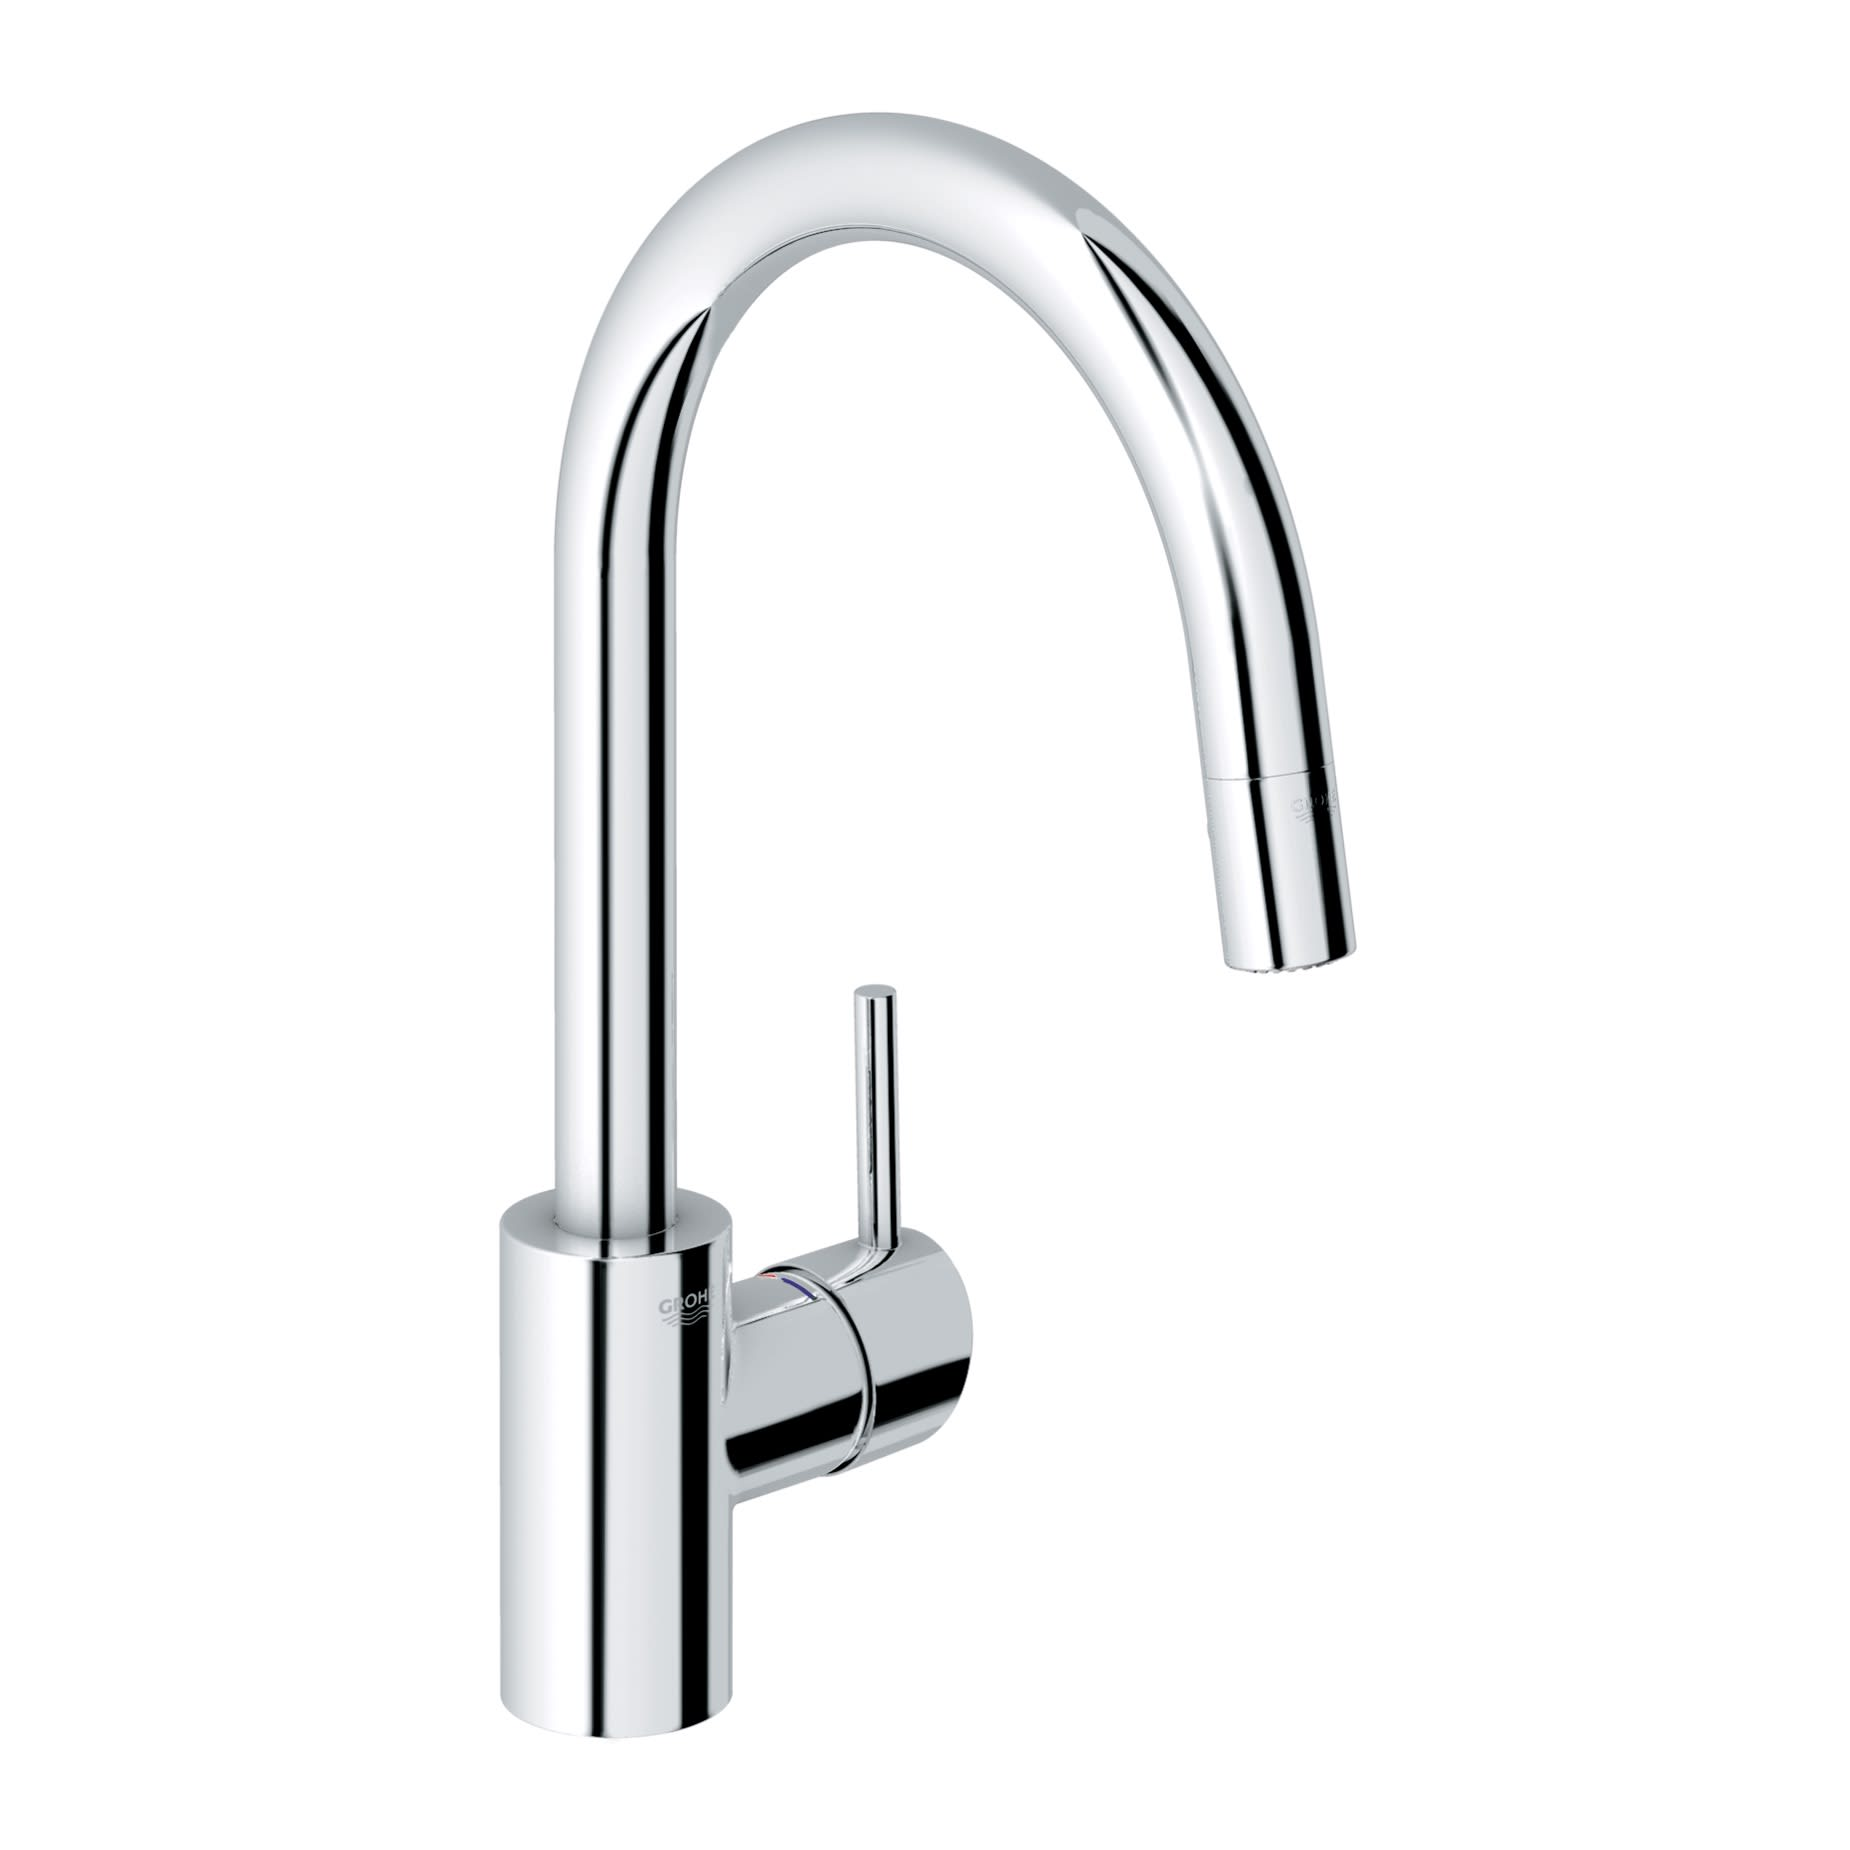 Grohe 32665 Concetto Dual Spray Pull Down Kitchen Faucet ...